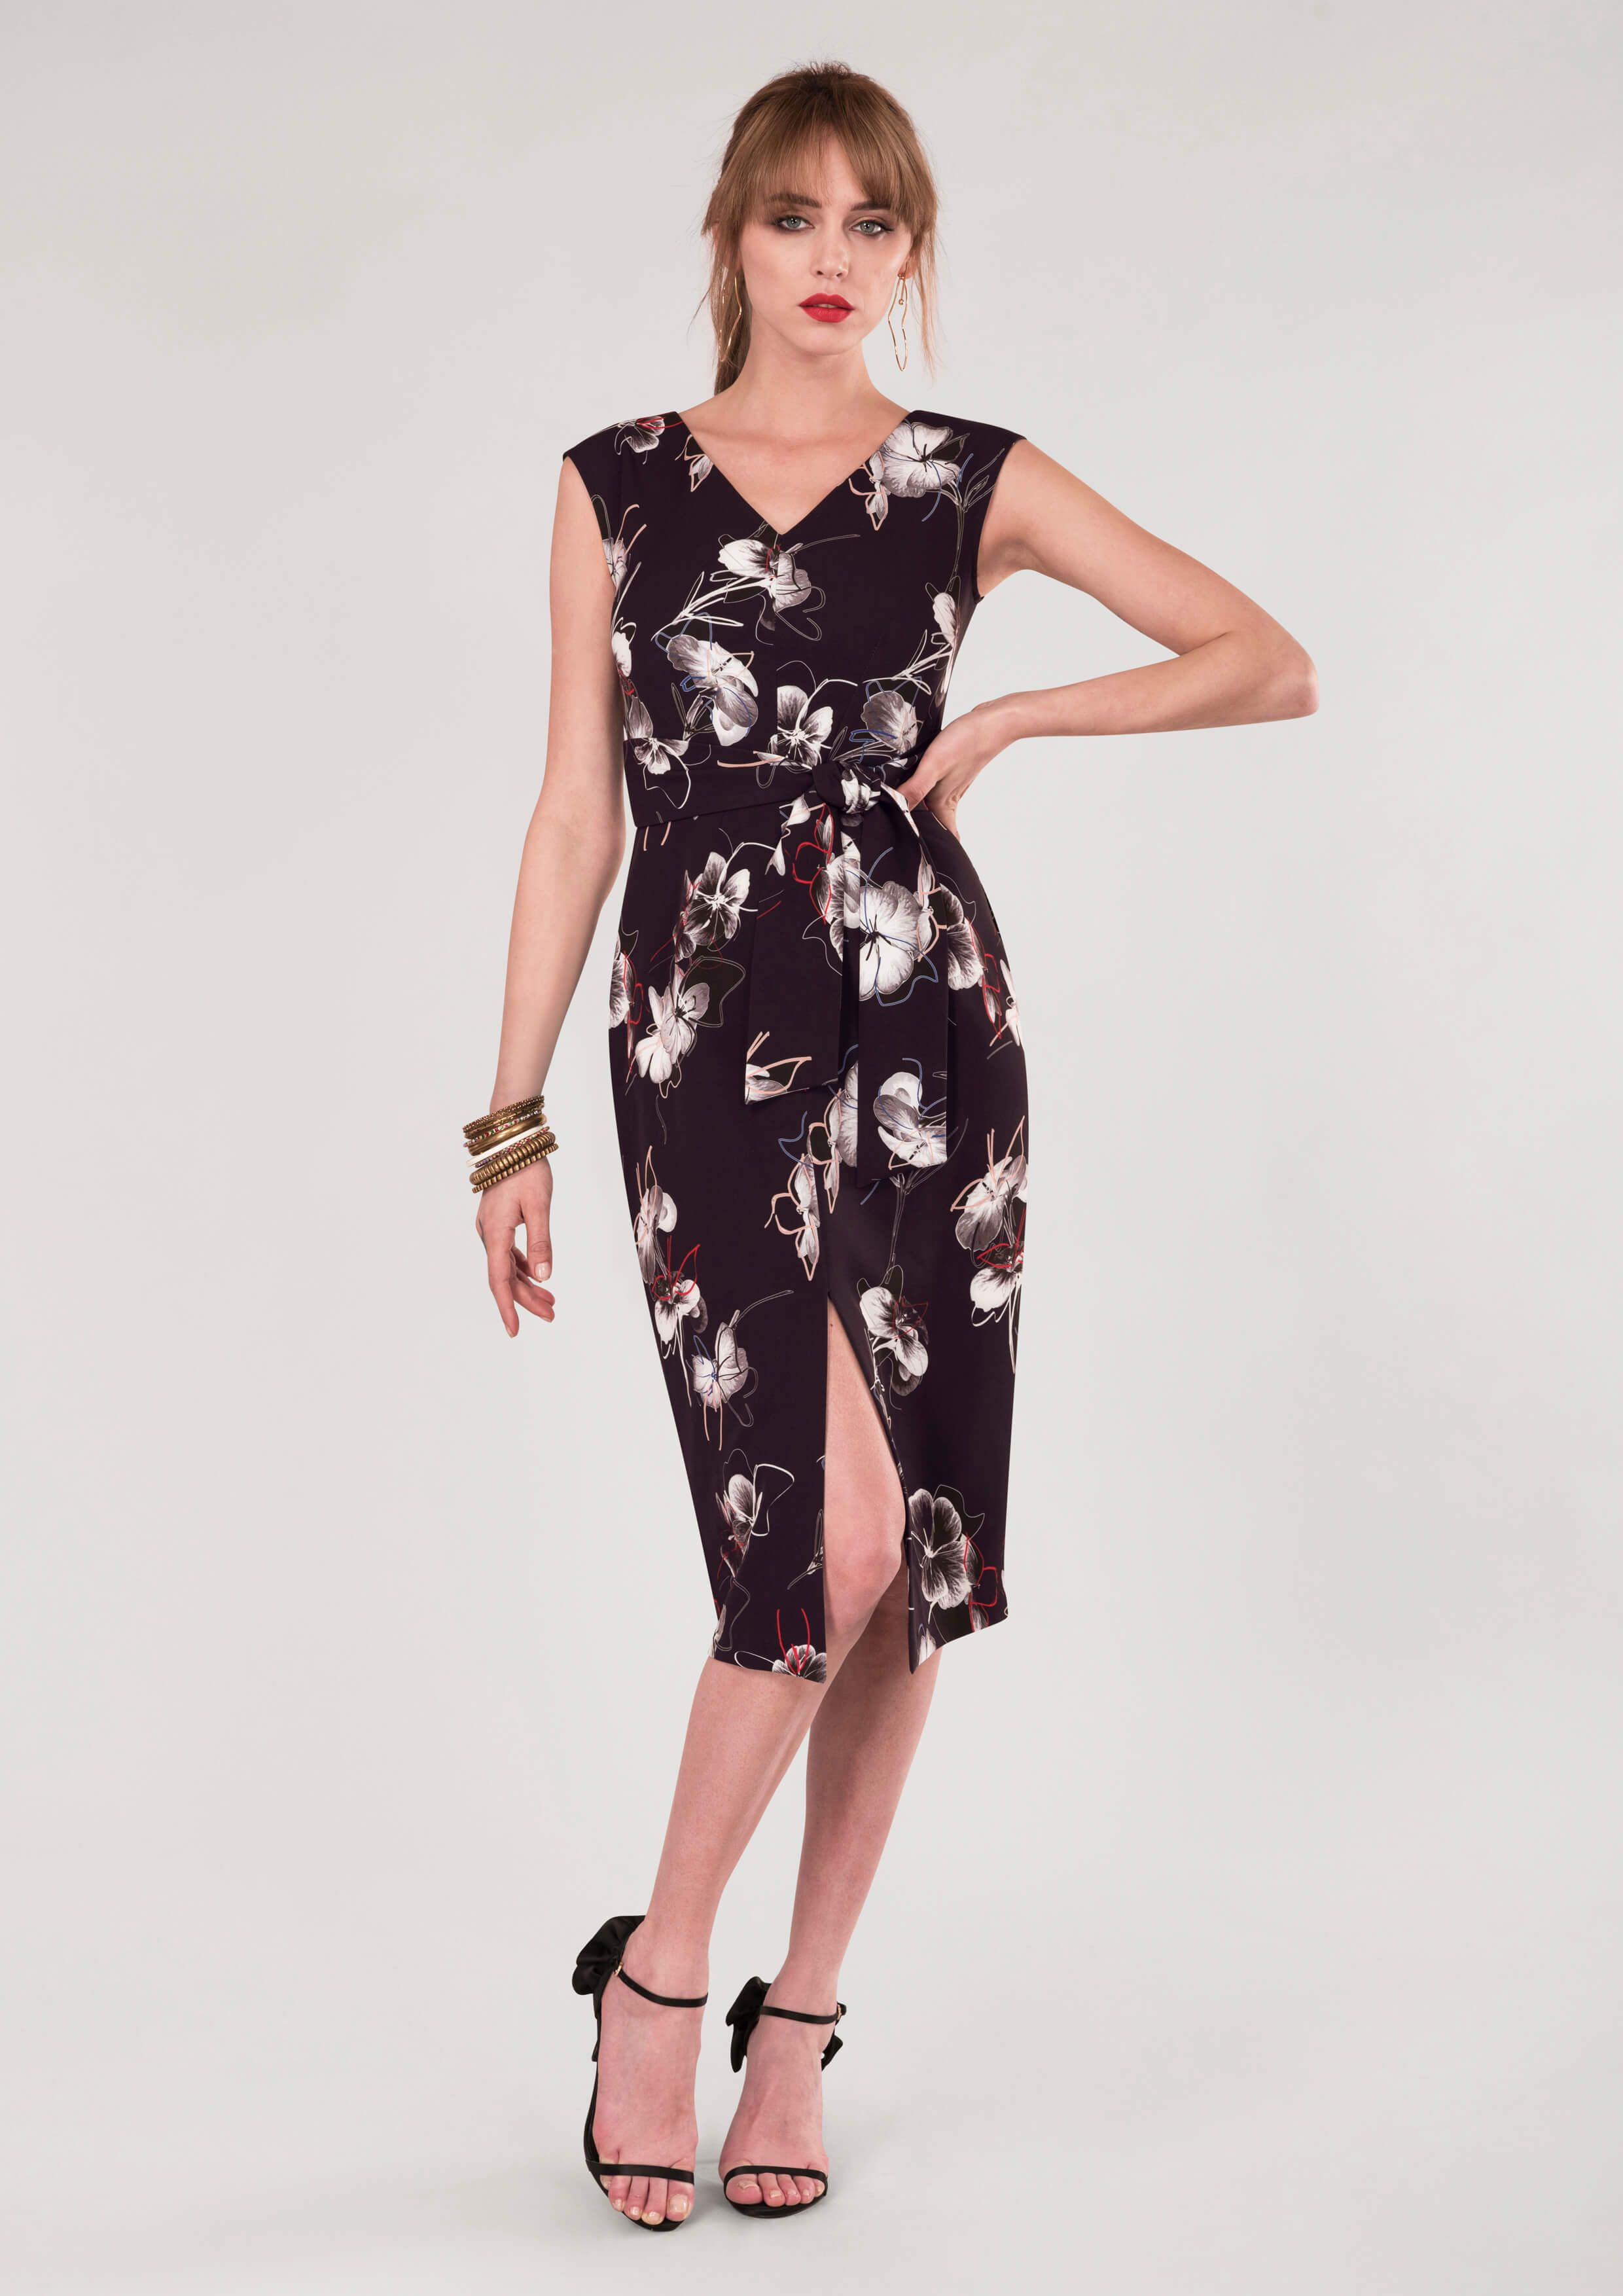 e0f40e74bf54 Black Floral Sleeveless Tie Front Wrap Dress - Wanderlust - Collections